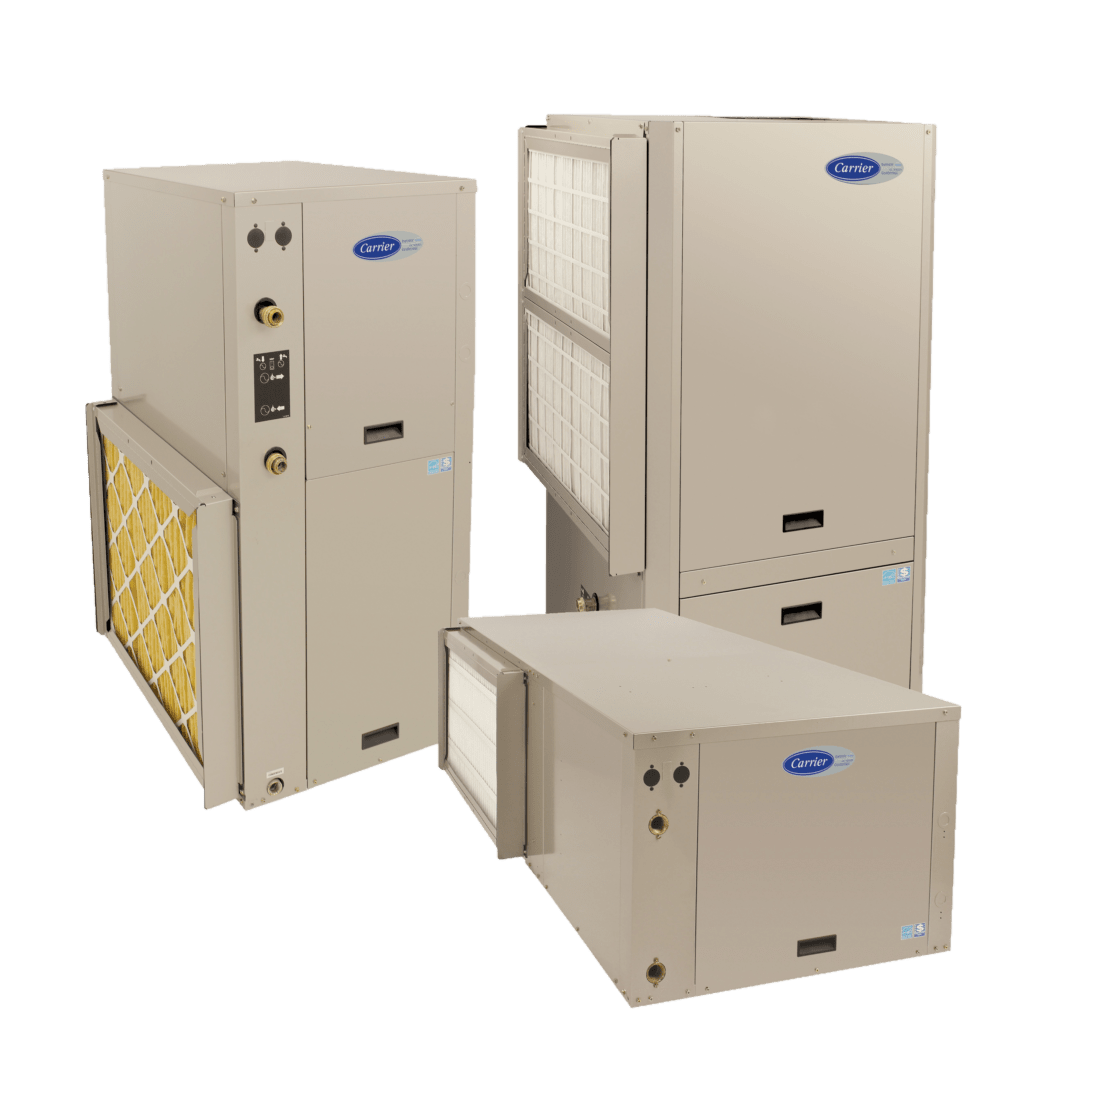 carrier infinity geothermal heat pump system